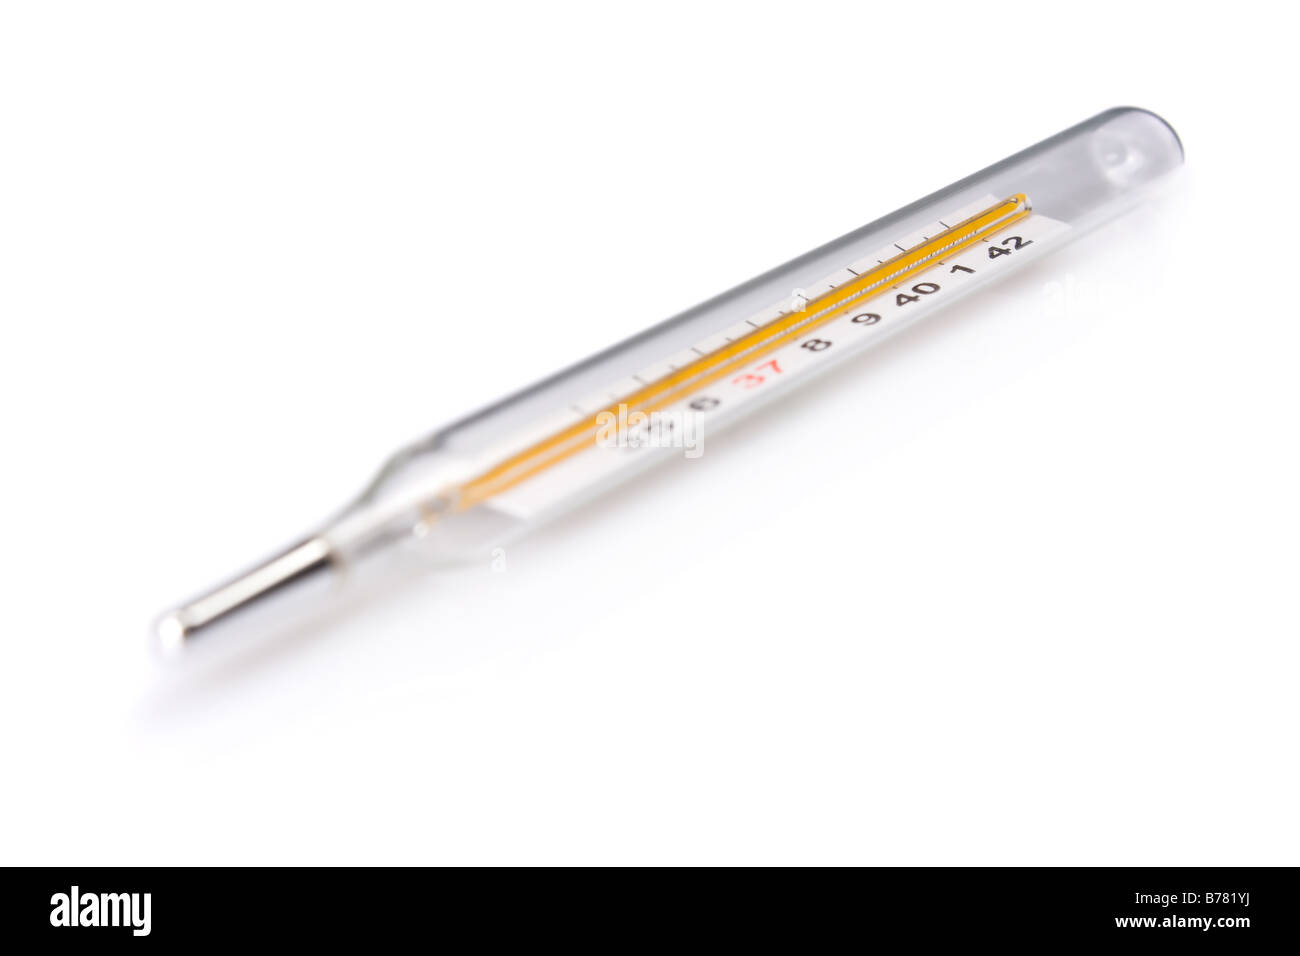 Traditional thermometer with focus on high fever temperature - Stock Image